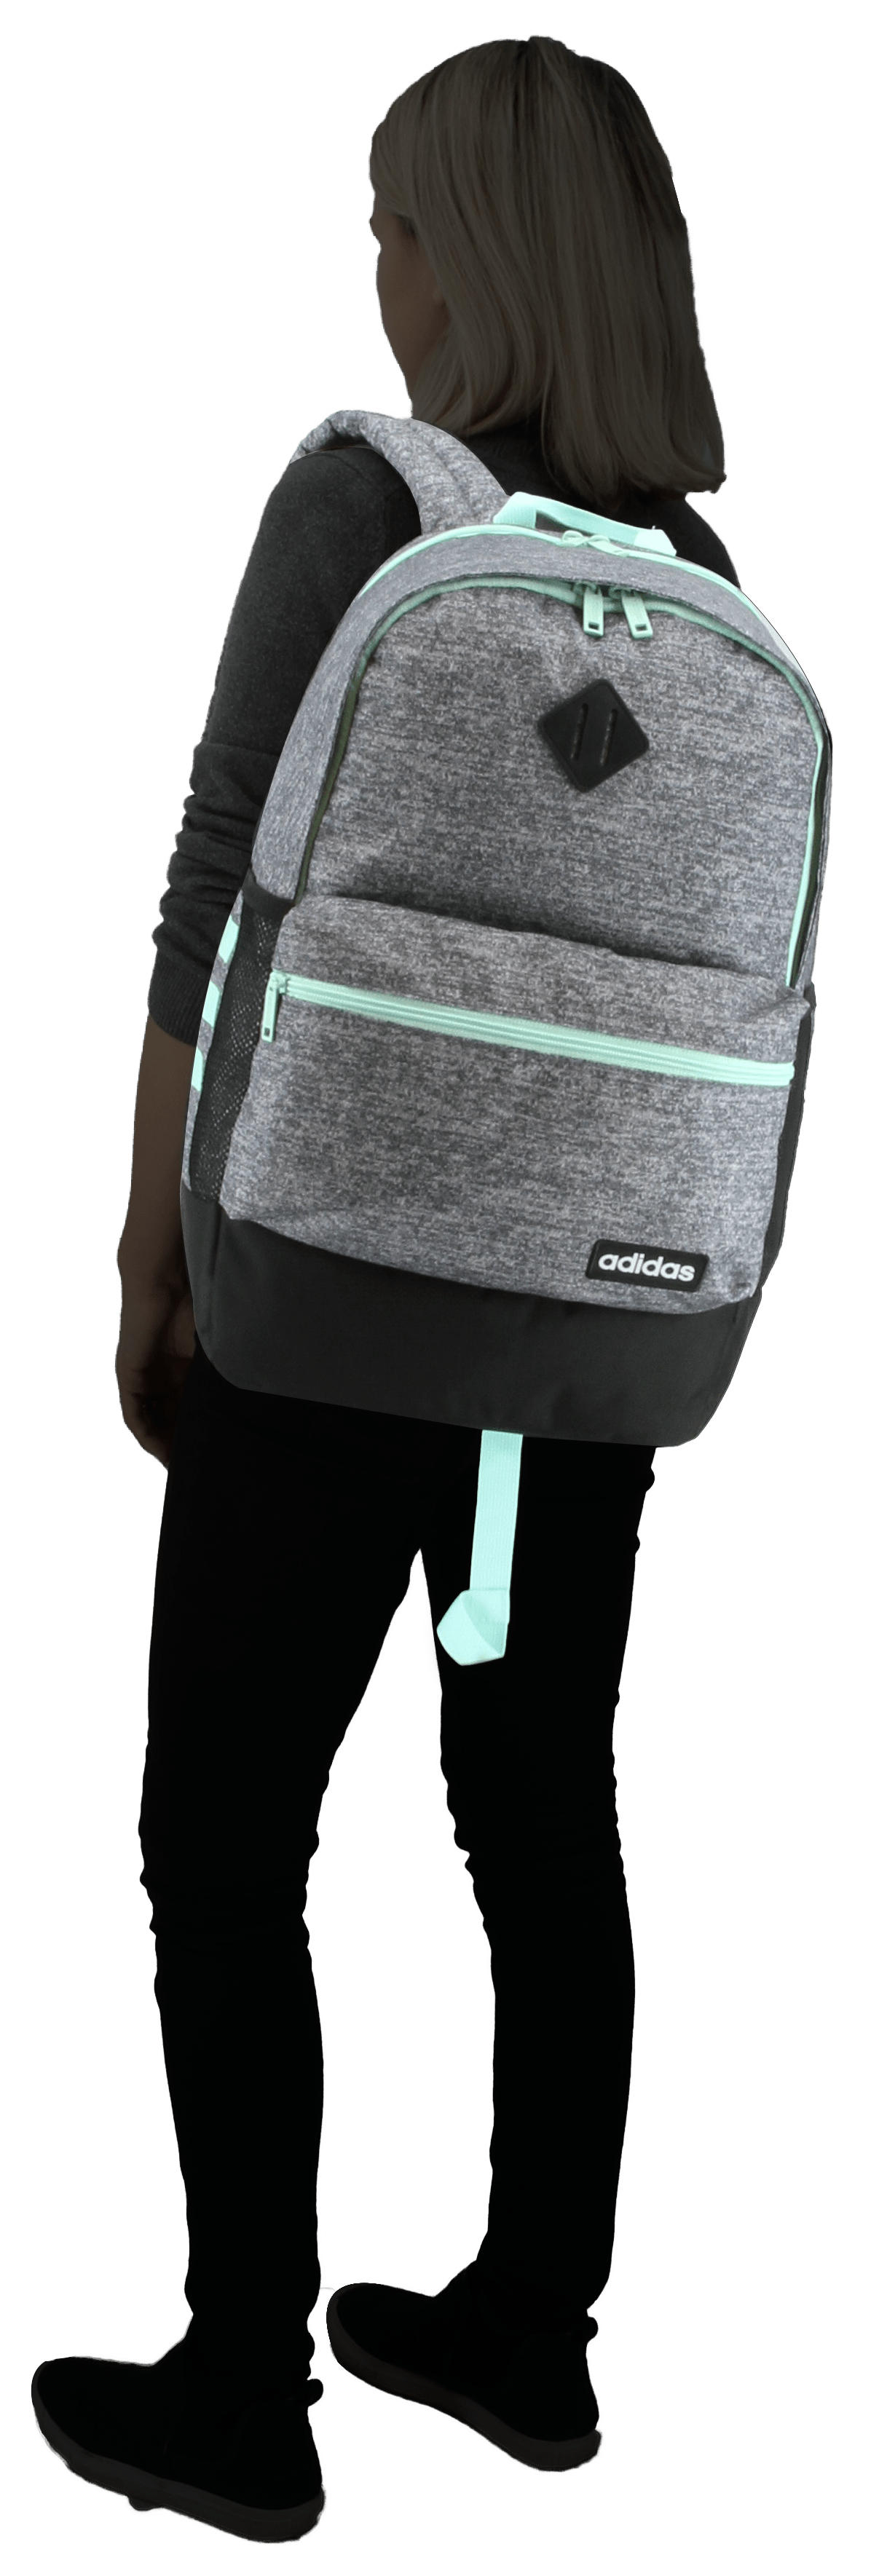 96e8a61782 Adidas Core Backpack